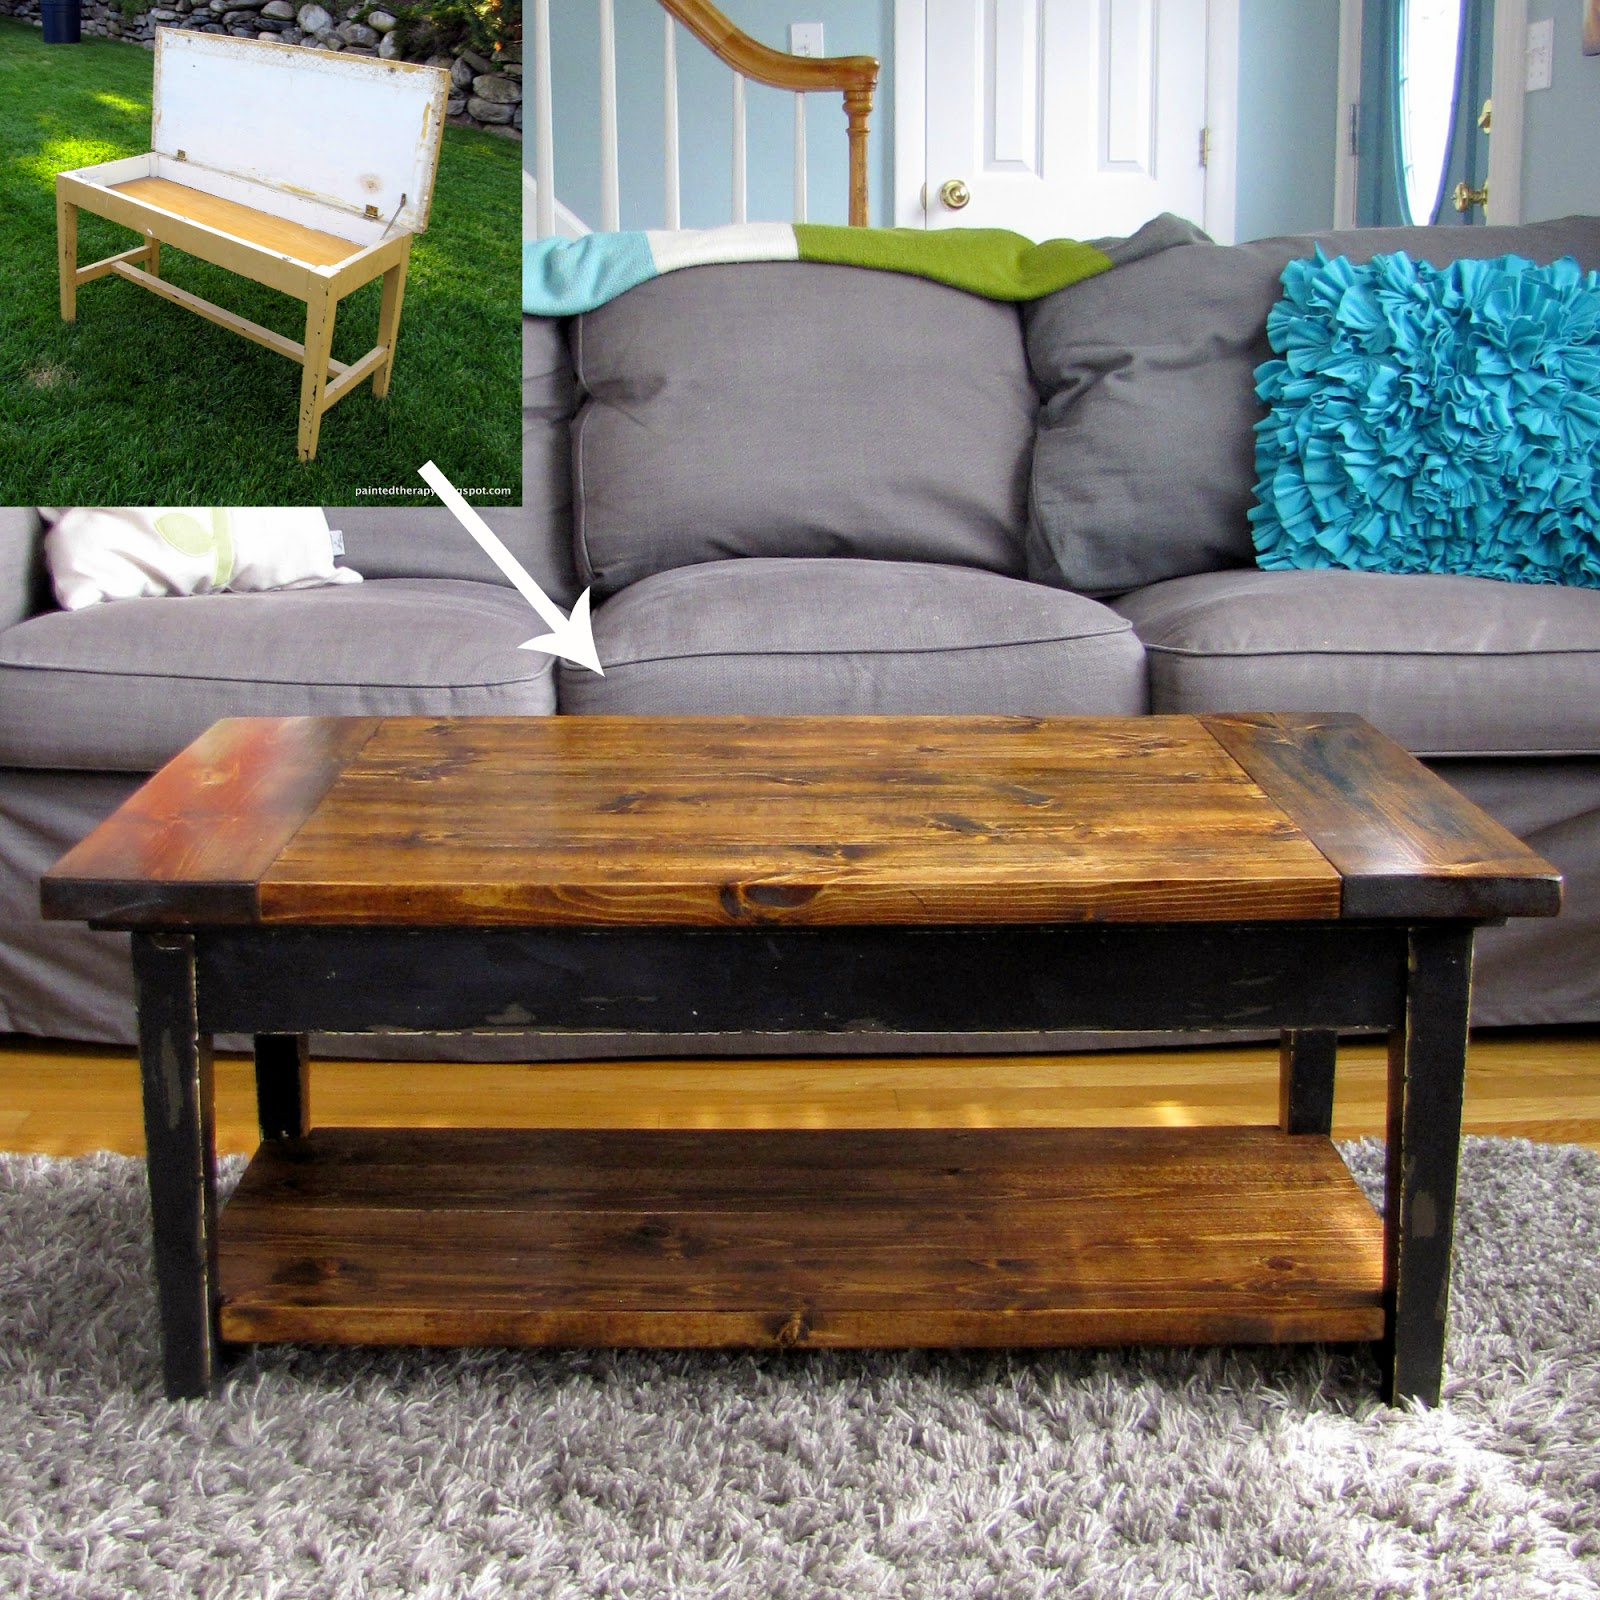 upcycled-piano-bench-turned-coffee-table